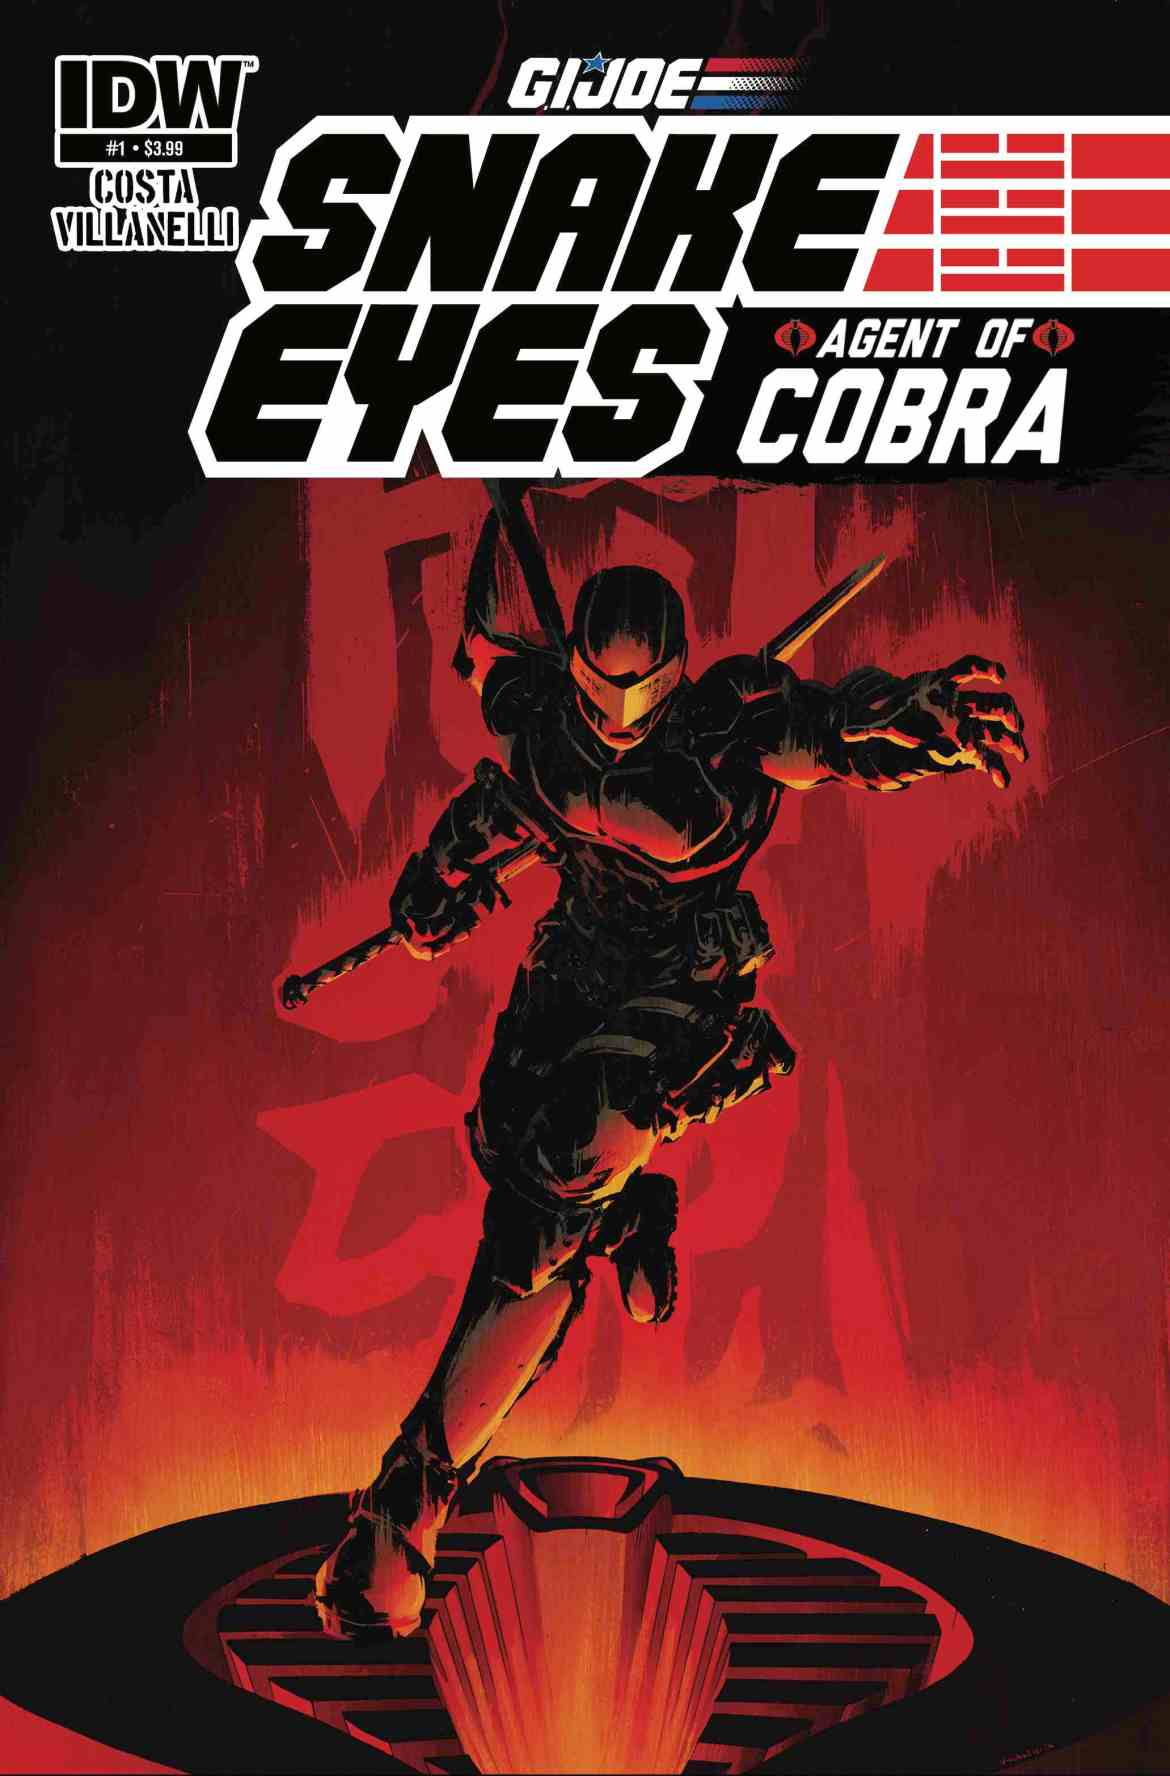 G.I. JOE: Snake Eyes: Agent of COBRA! Coming In January 2015!